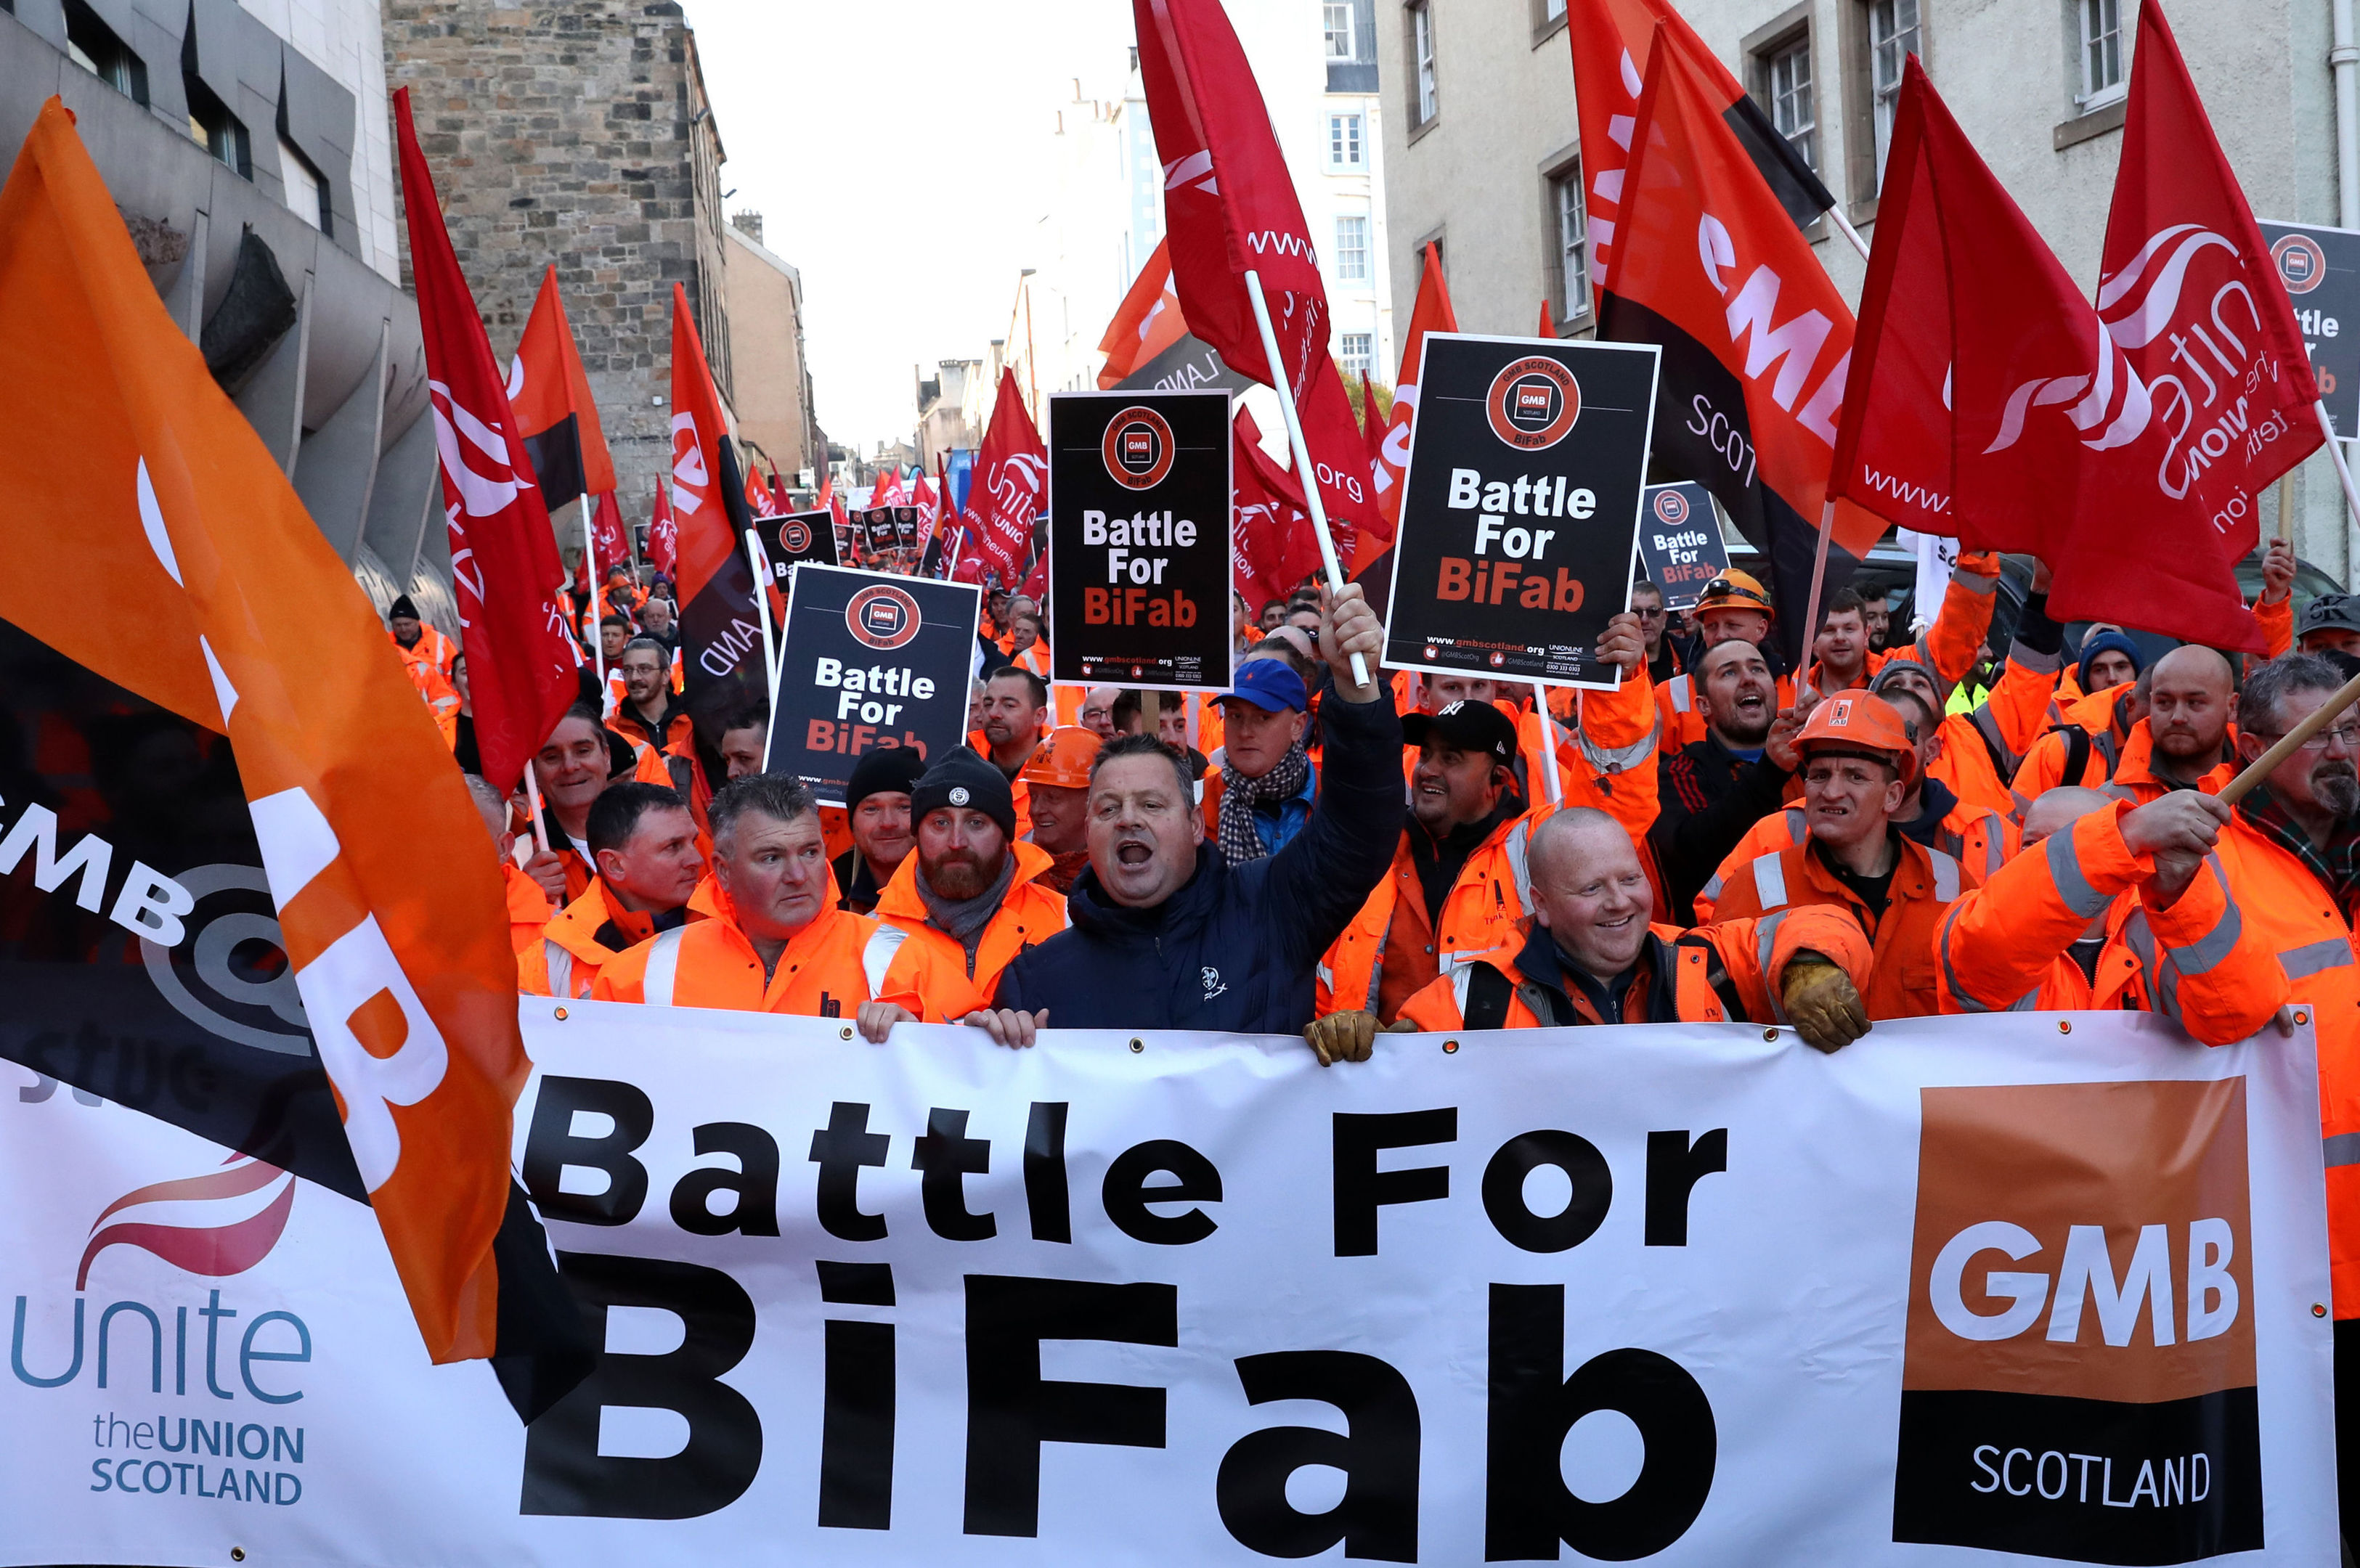 BiFab agreement reached to stave off administration threat